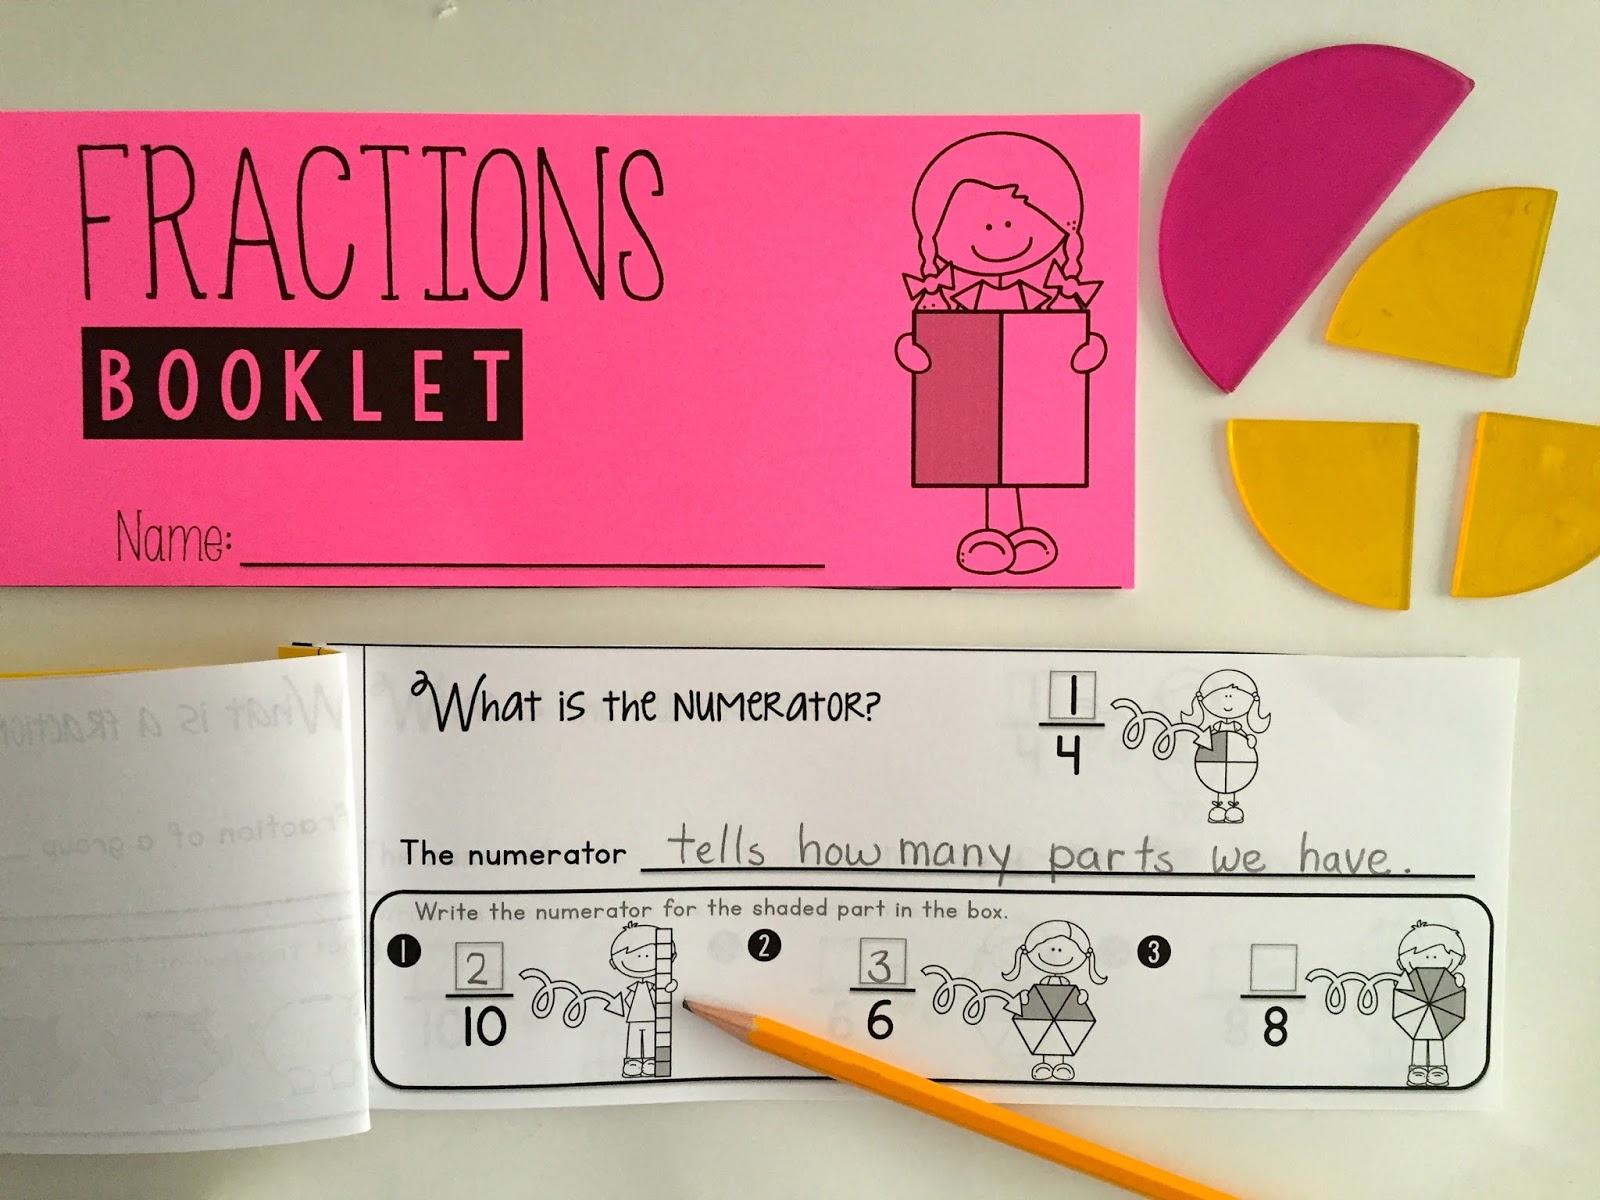 Whos who and whos new fraction fun some freebies fractions booklet maxwellsz